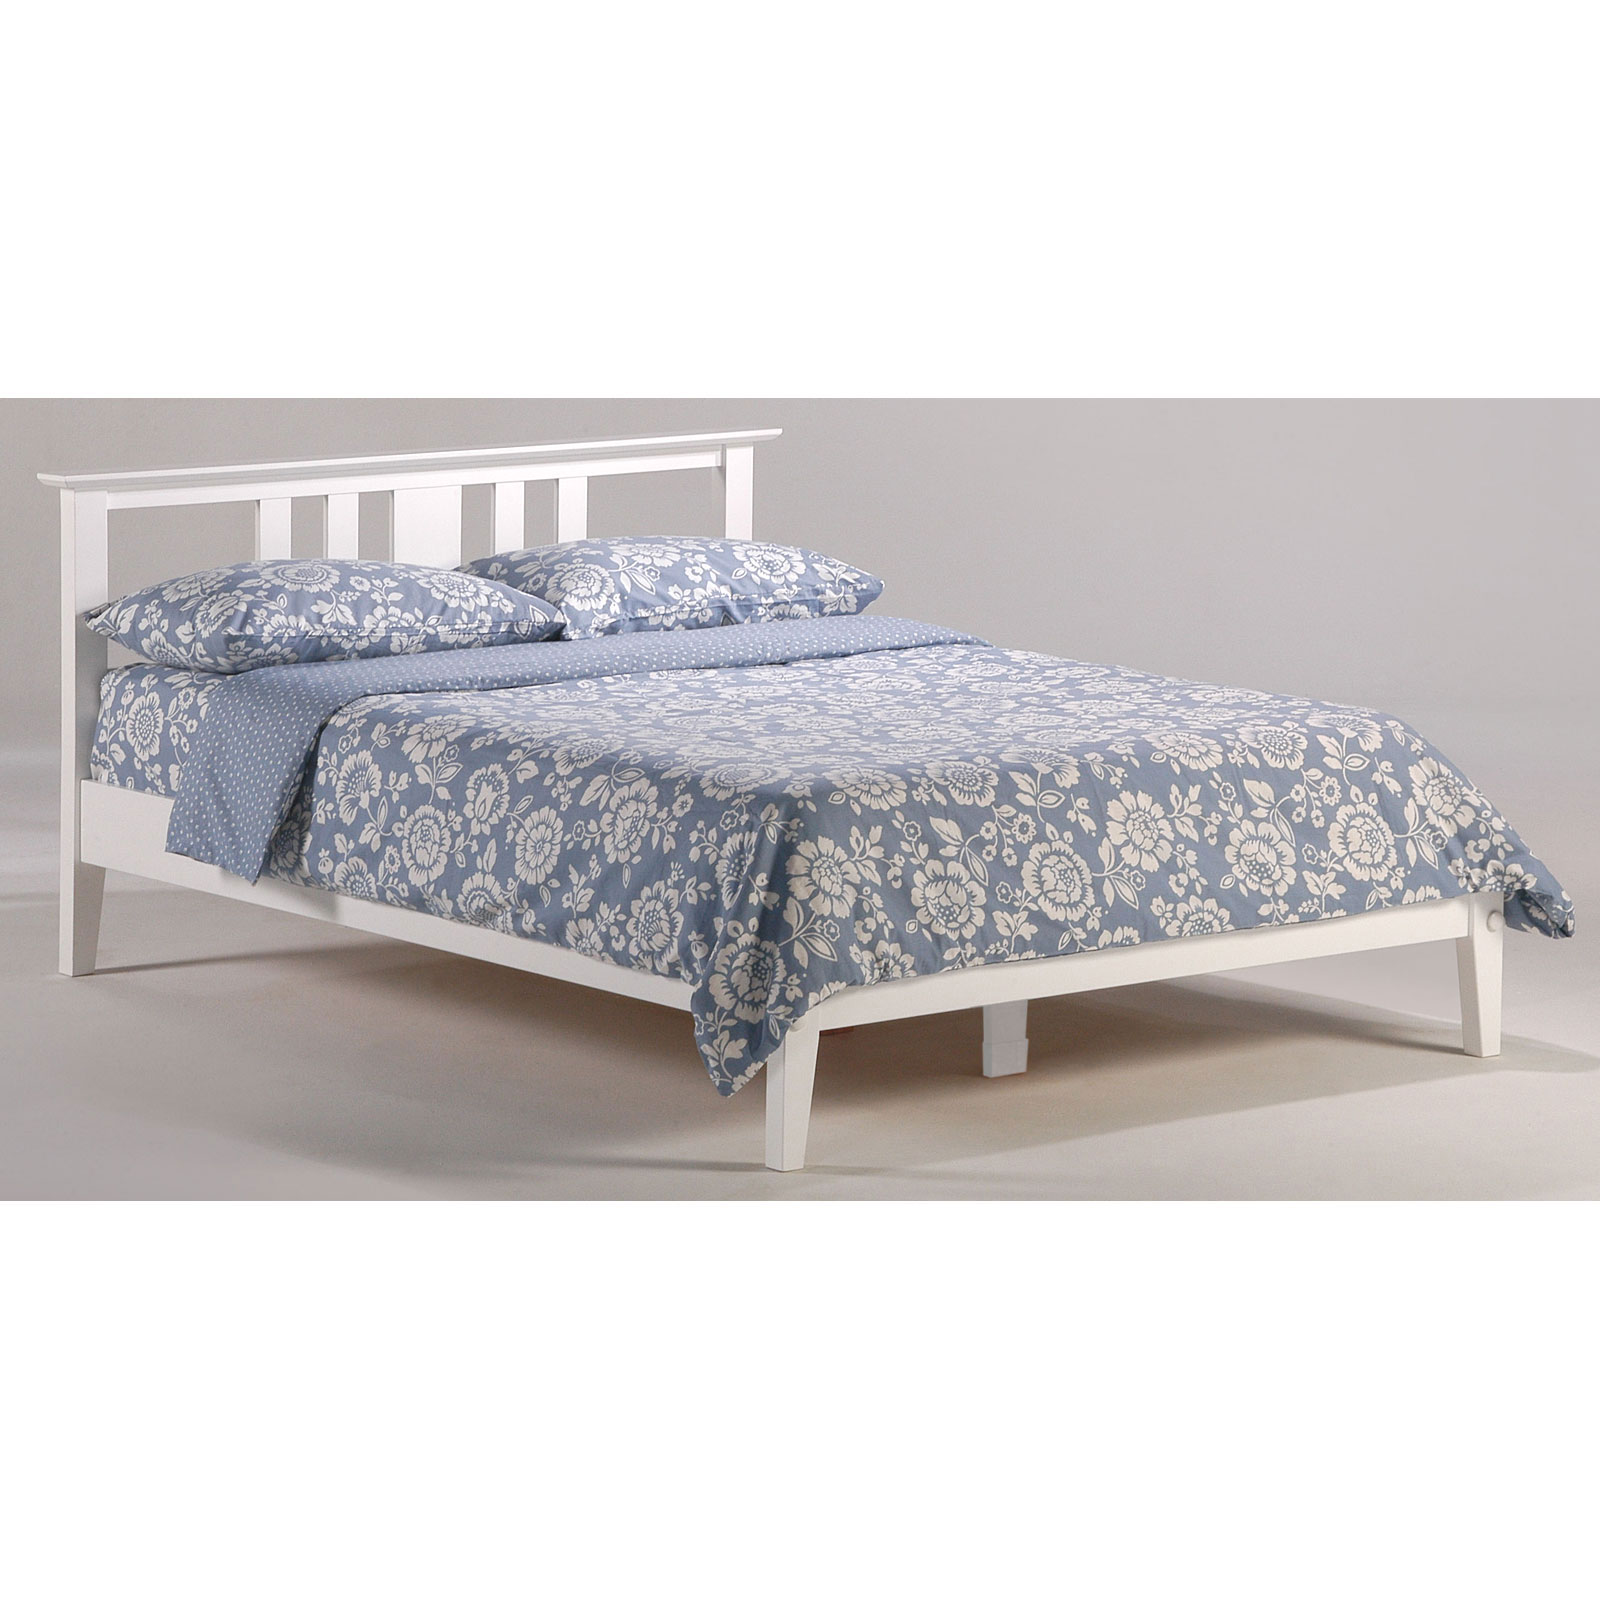 Eastern King Thyme Platform Bed In Beds And Headboards